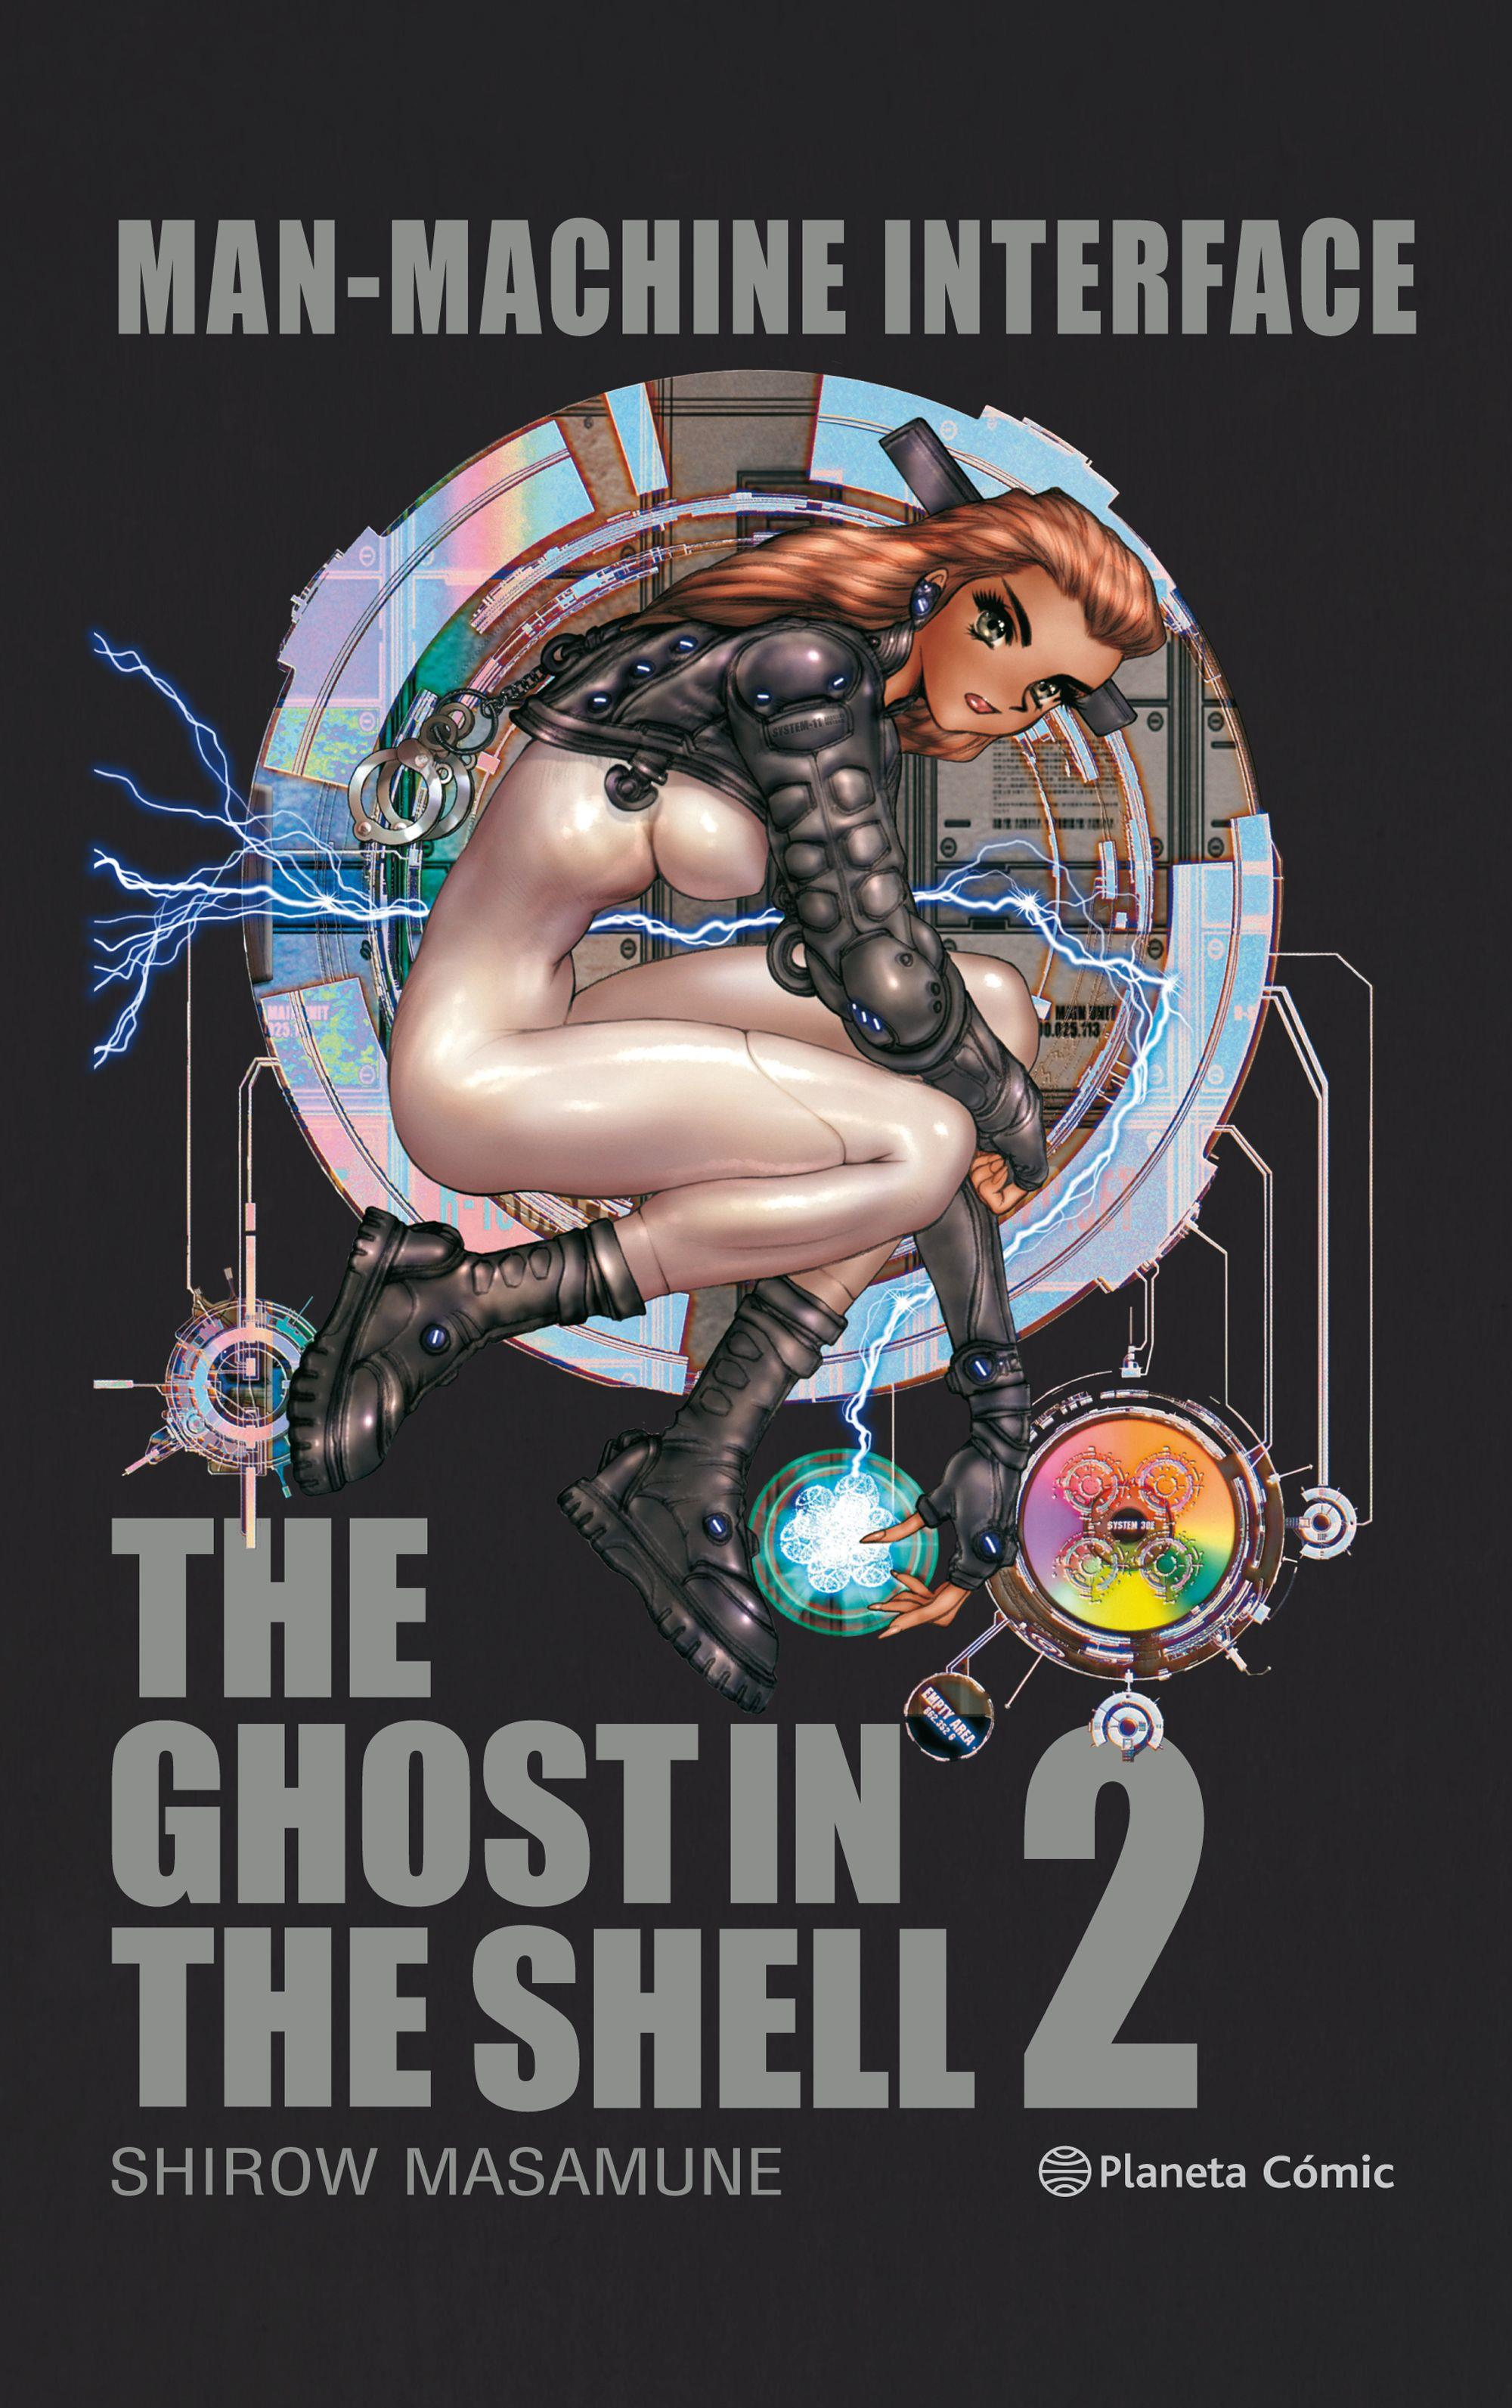 Ghost in the Shell 2: Manmachine Interface (edición Trazado) | N0418-PLA09 | Masamune Shirow | Terra de Còmic - Tu tienda de cómics online especializada en cómics, manga y merchandising